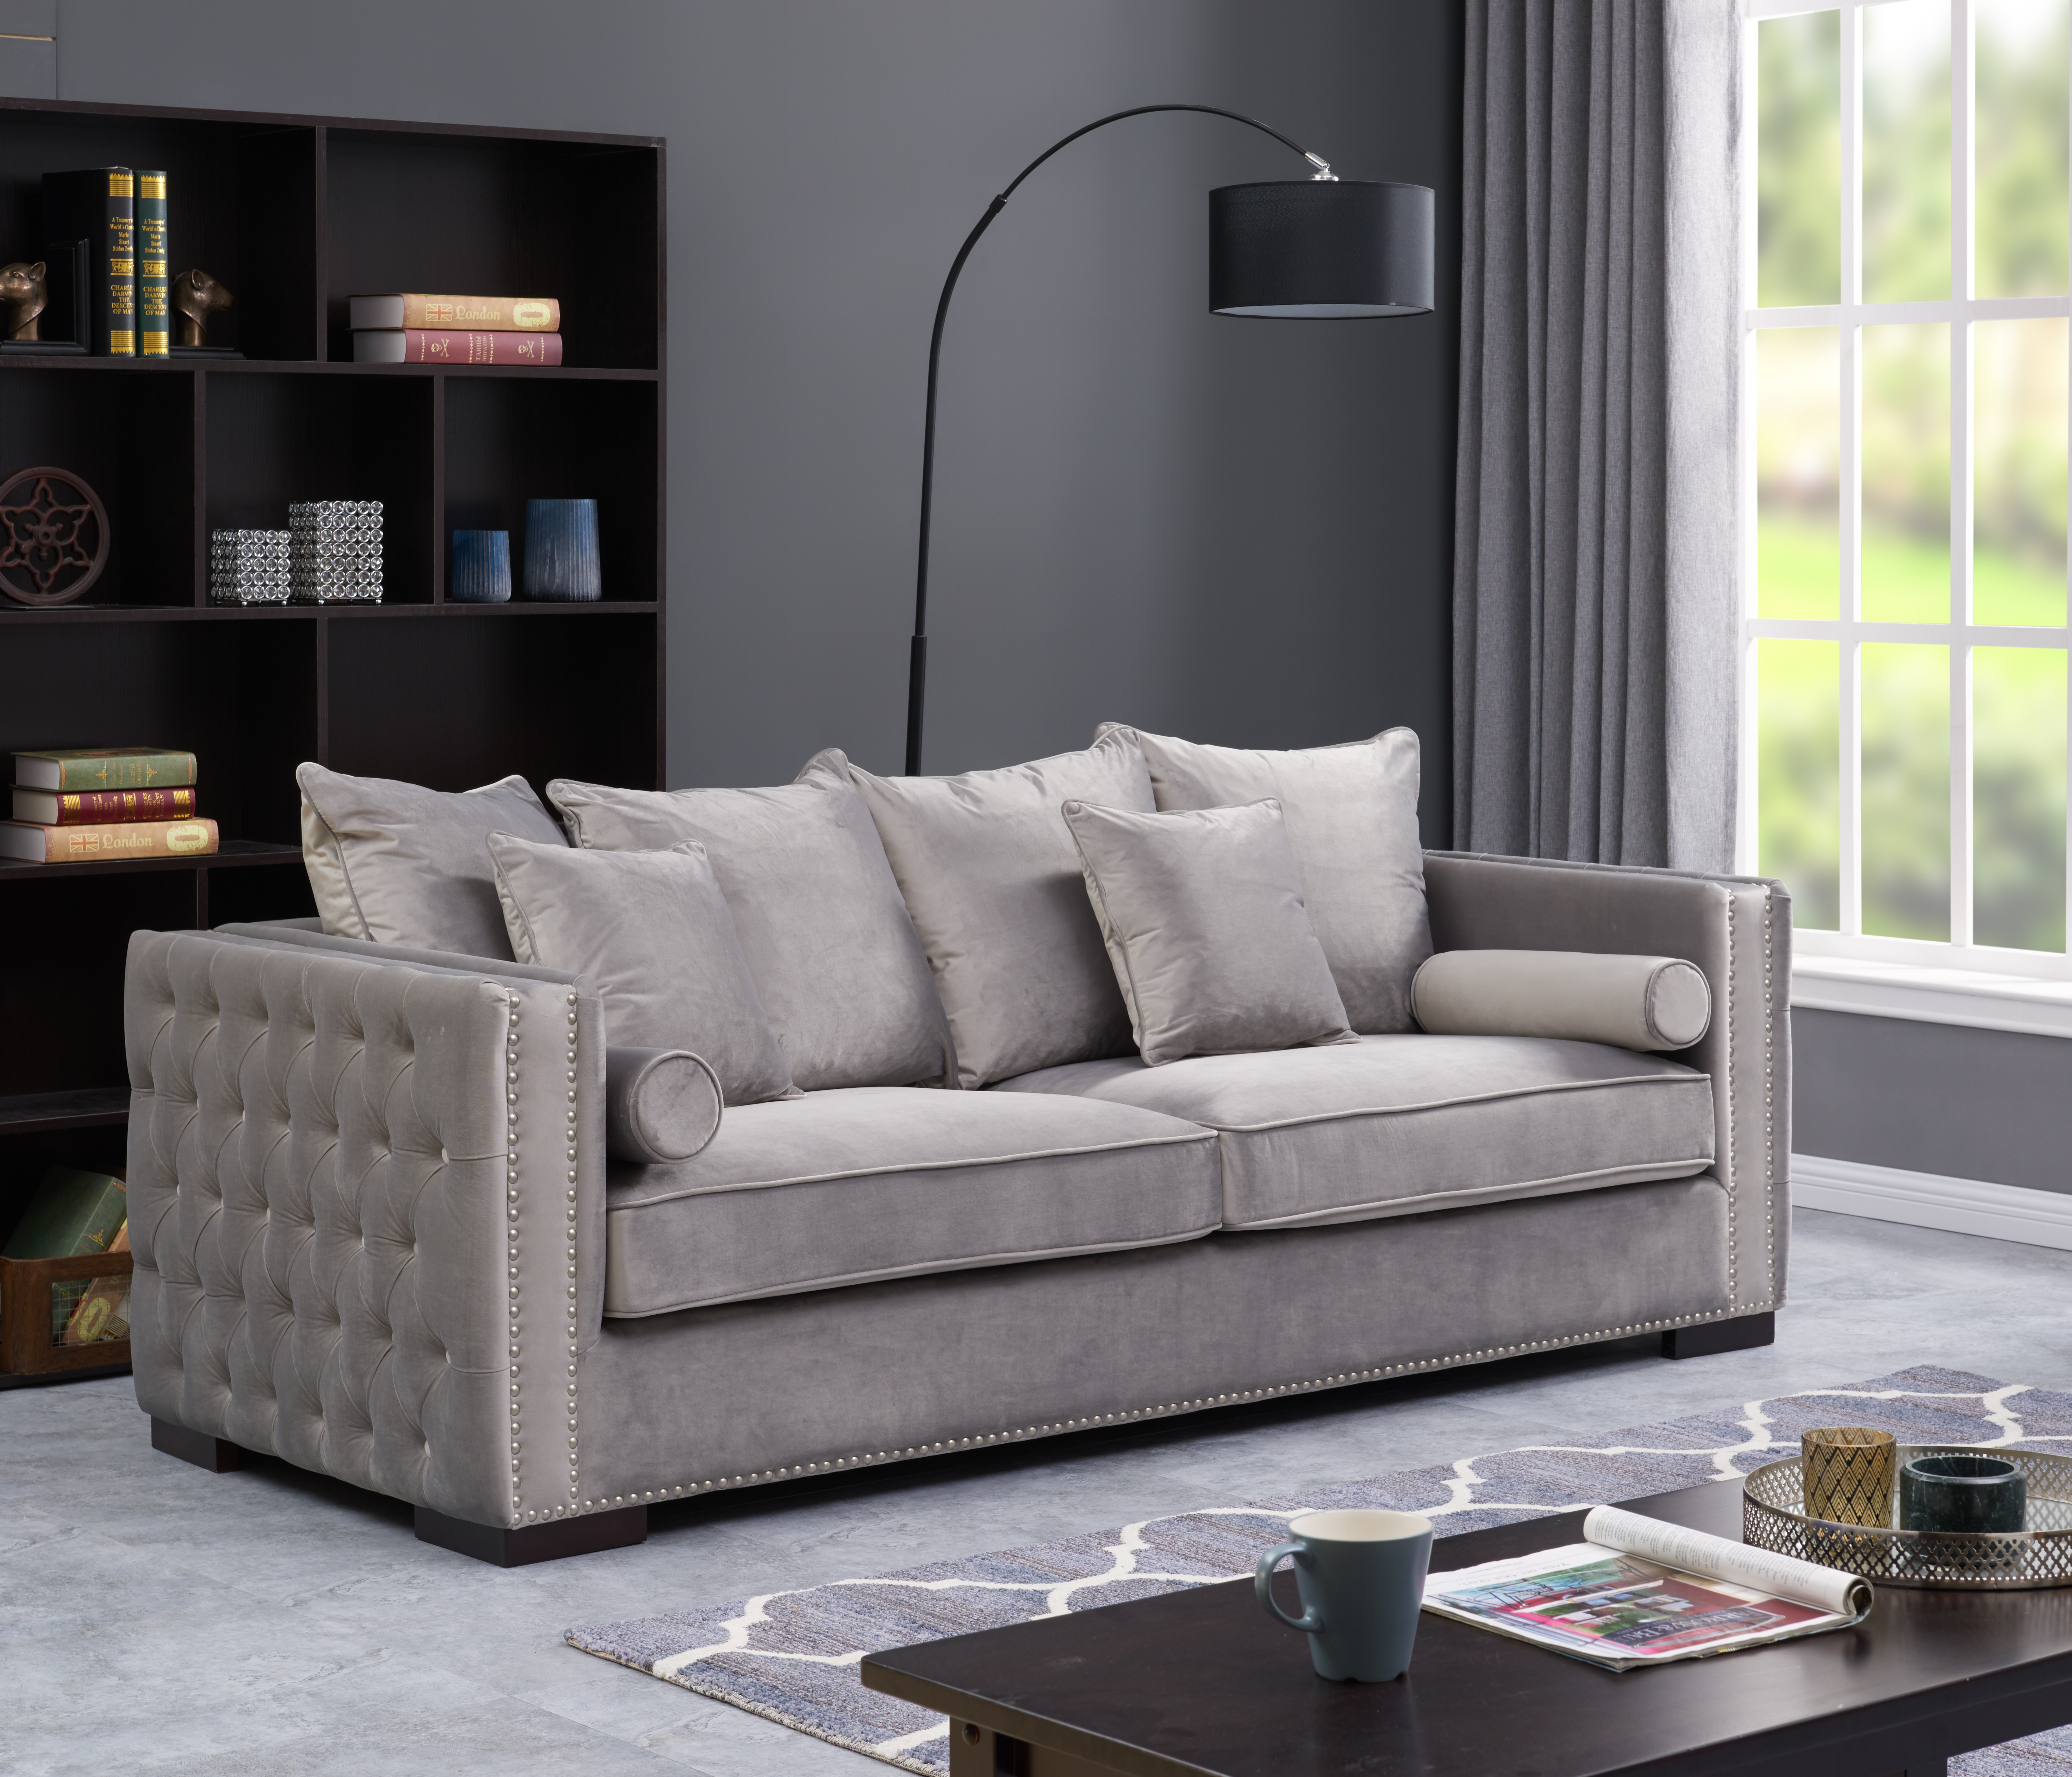 sofa shops glasgow city centre julius 6 piece leather power motion sectional modish furnishing furniture and flooring specialists chairs sofas